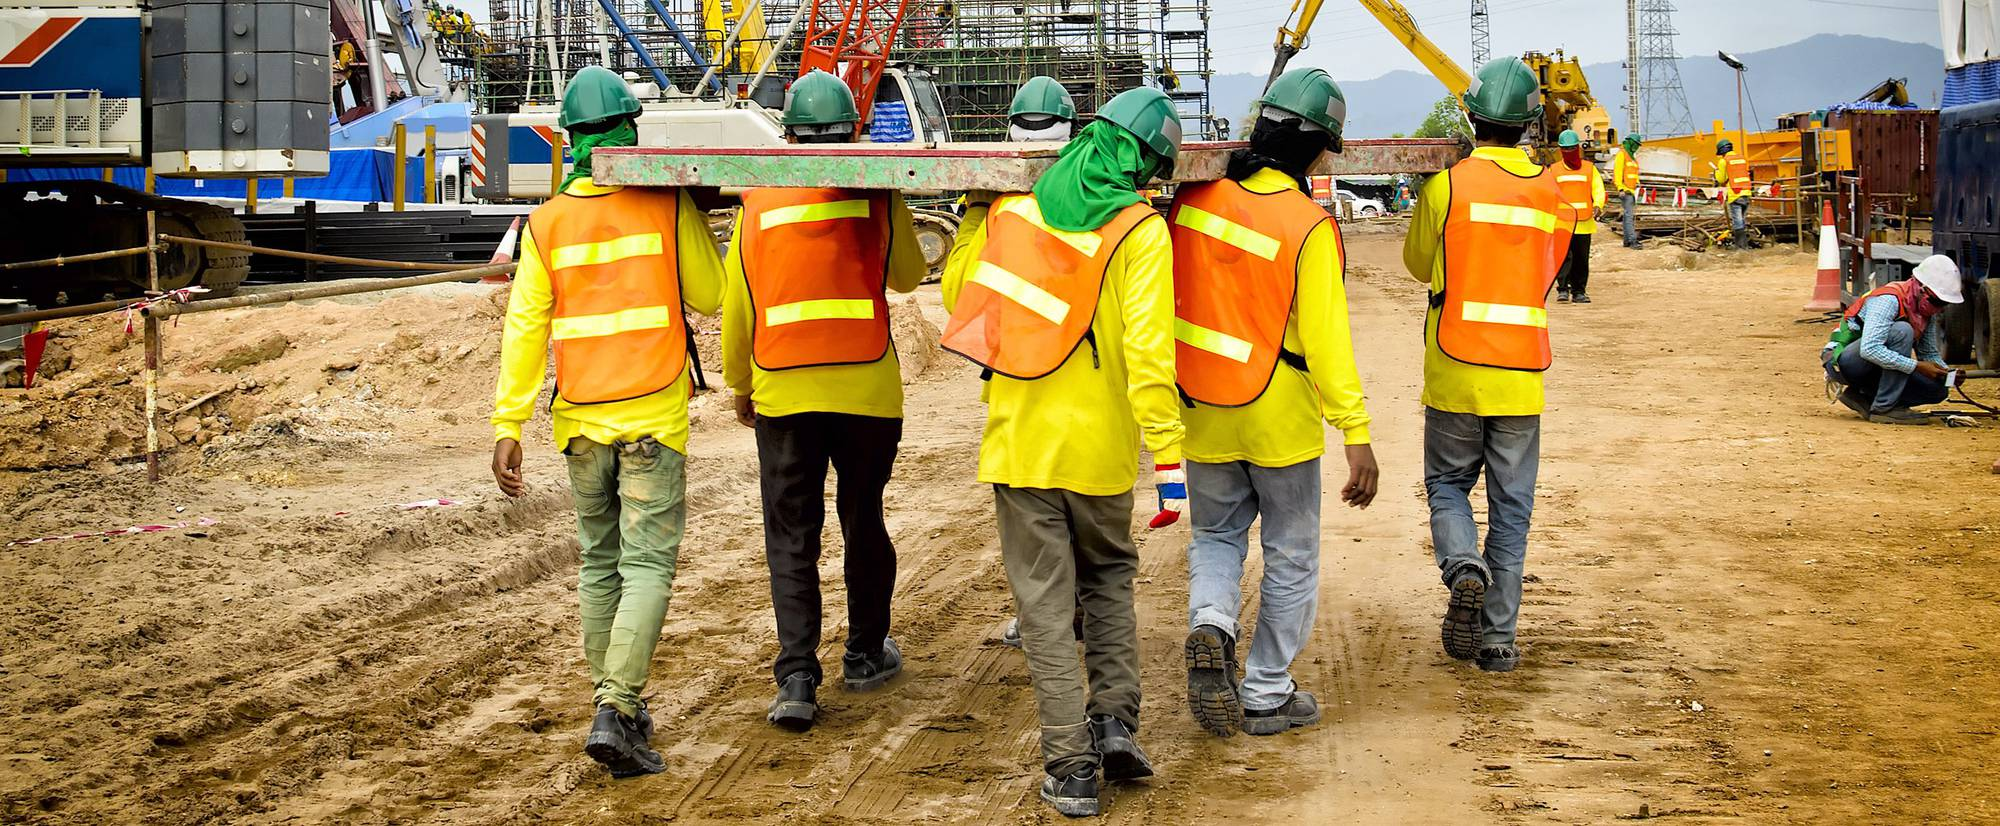 Worker Misclassification Hurts the Construction Industry